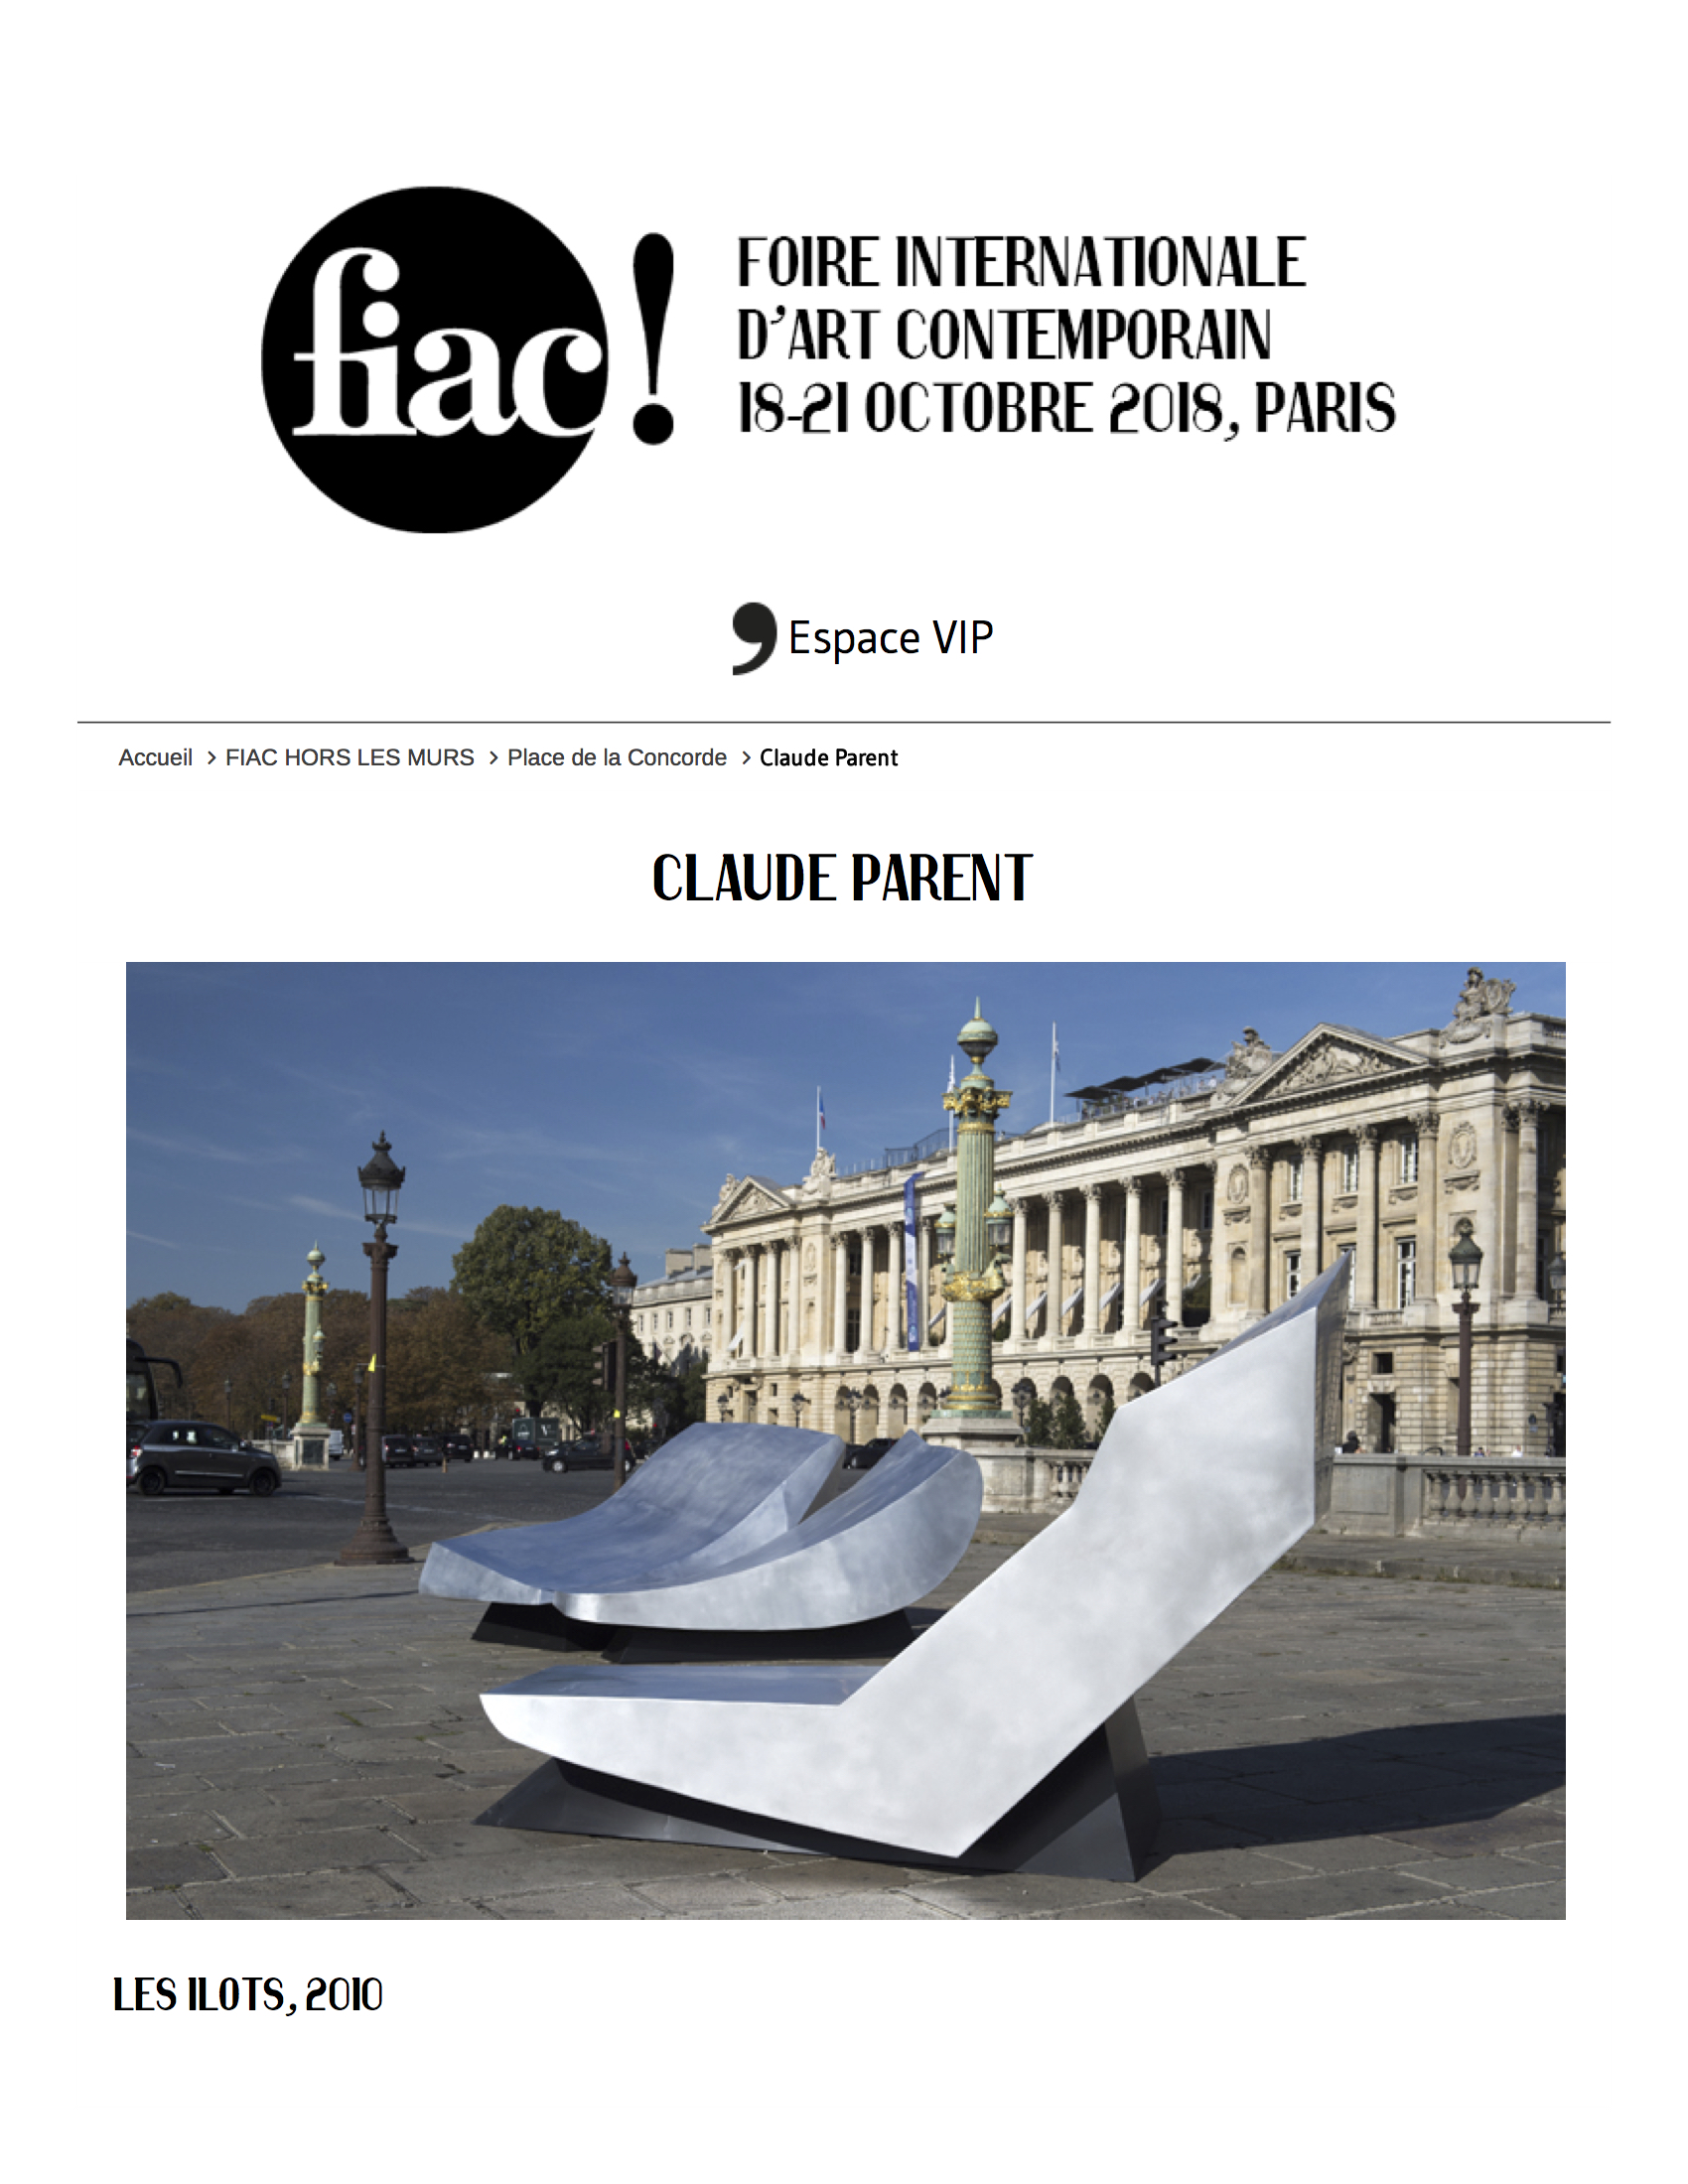 FIAC 2018, Claude Parent